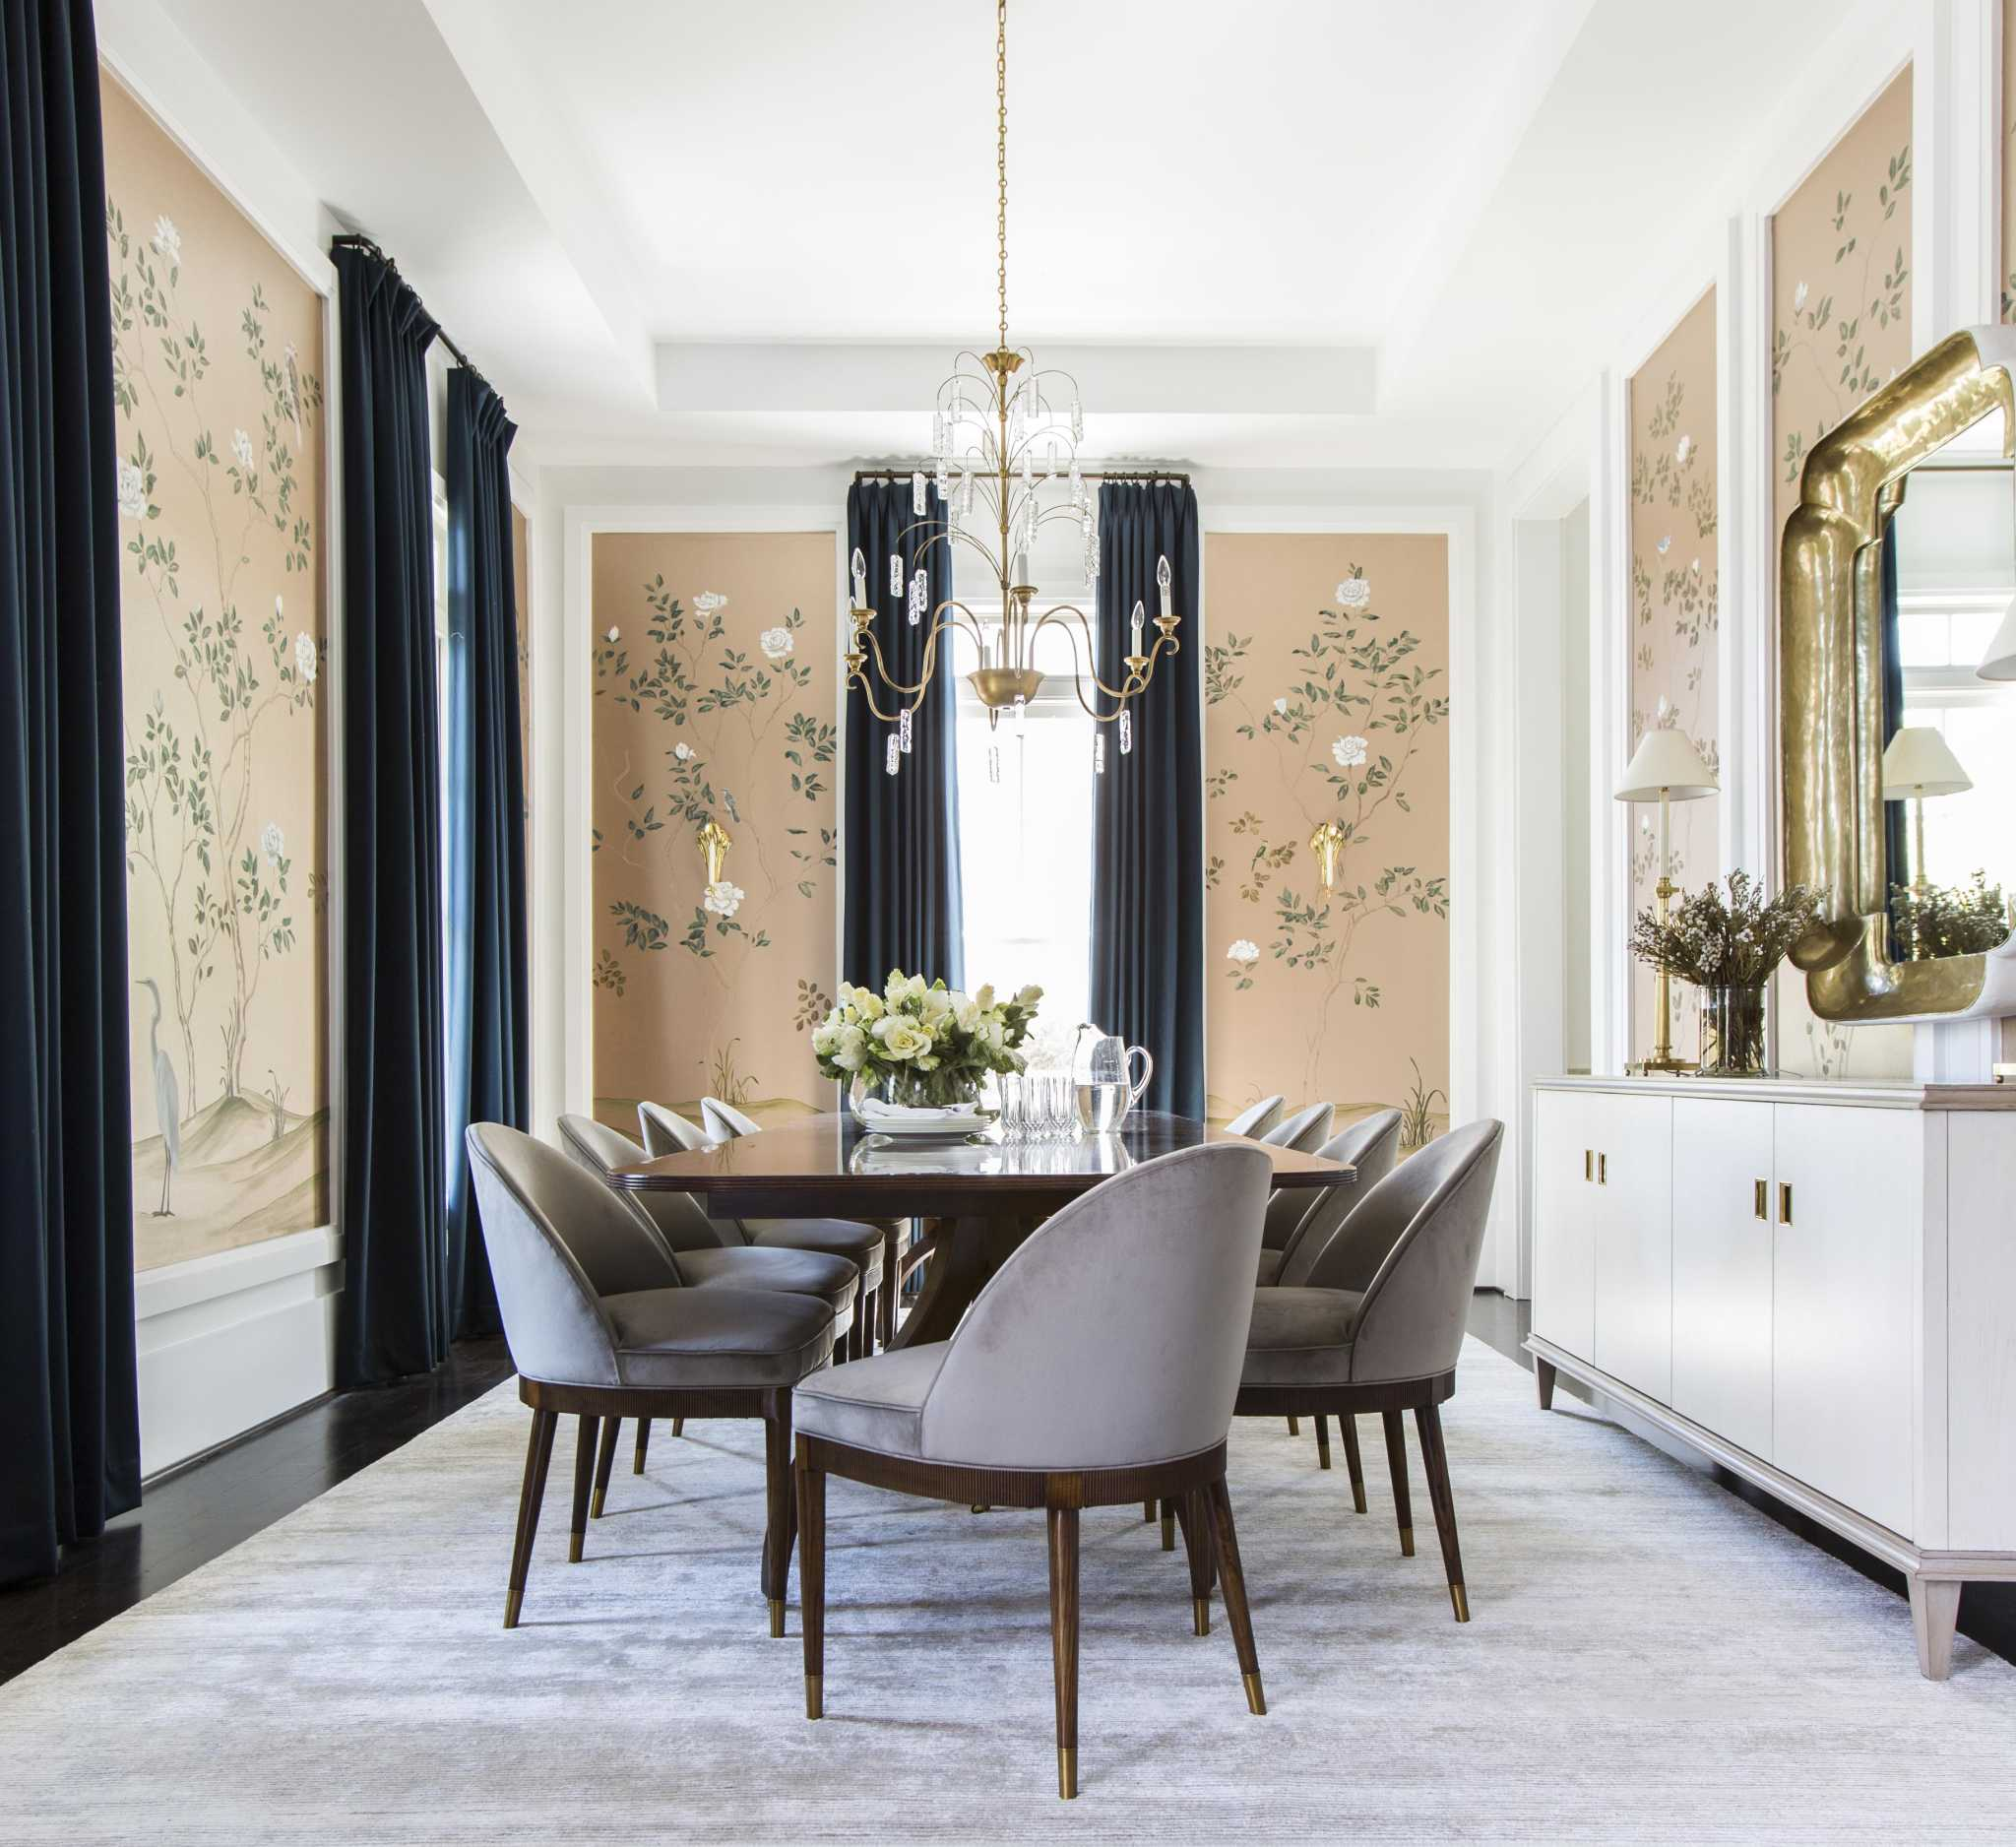 50 Dining Room Decorating Ideas And Pictures: How A Heights Home's Dining Room Went From Blank Slate To